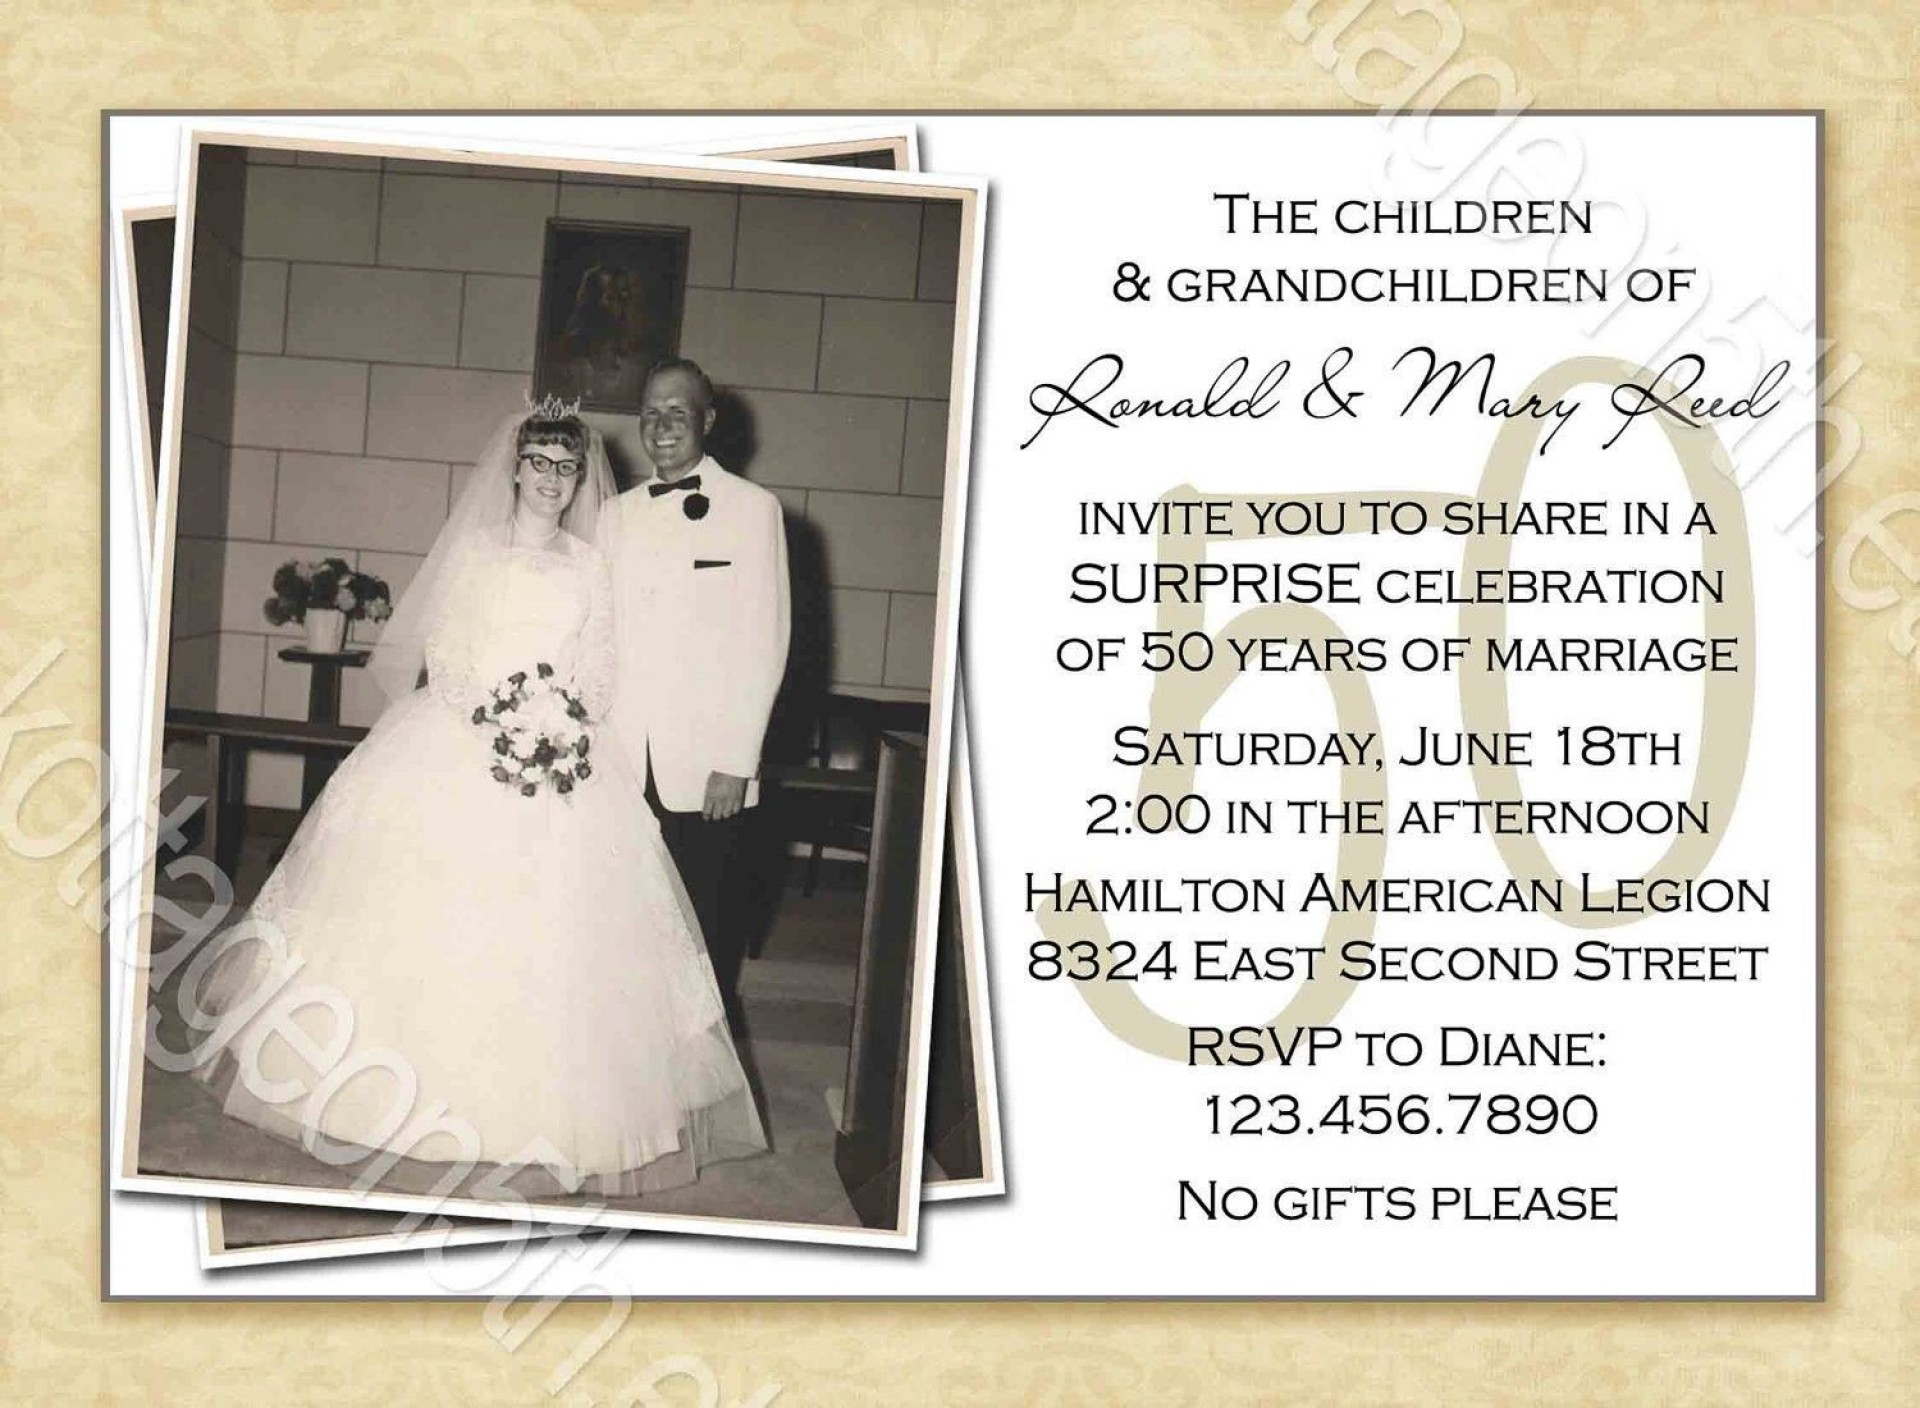 000 Frightening 50th Anniversary Invitation Template Free Image  For Word Golden Wedding Download1920